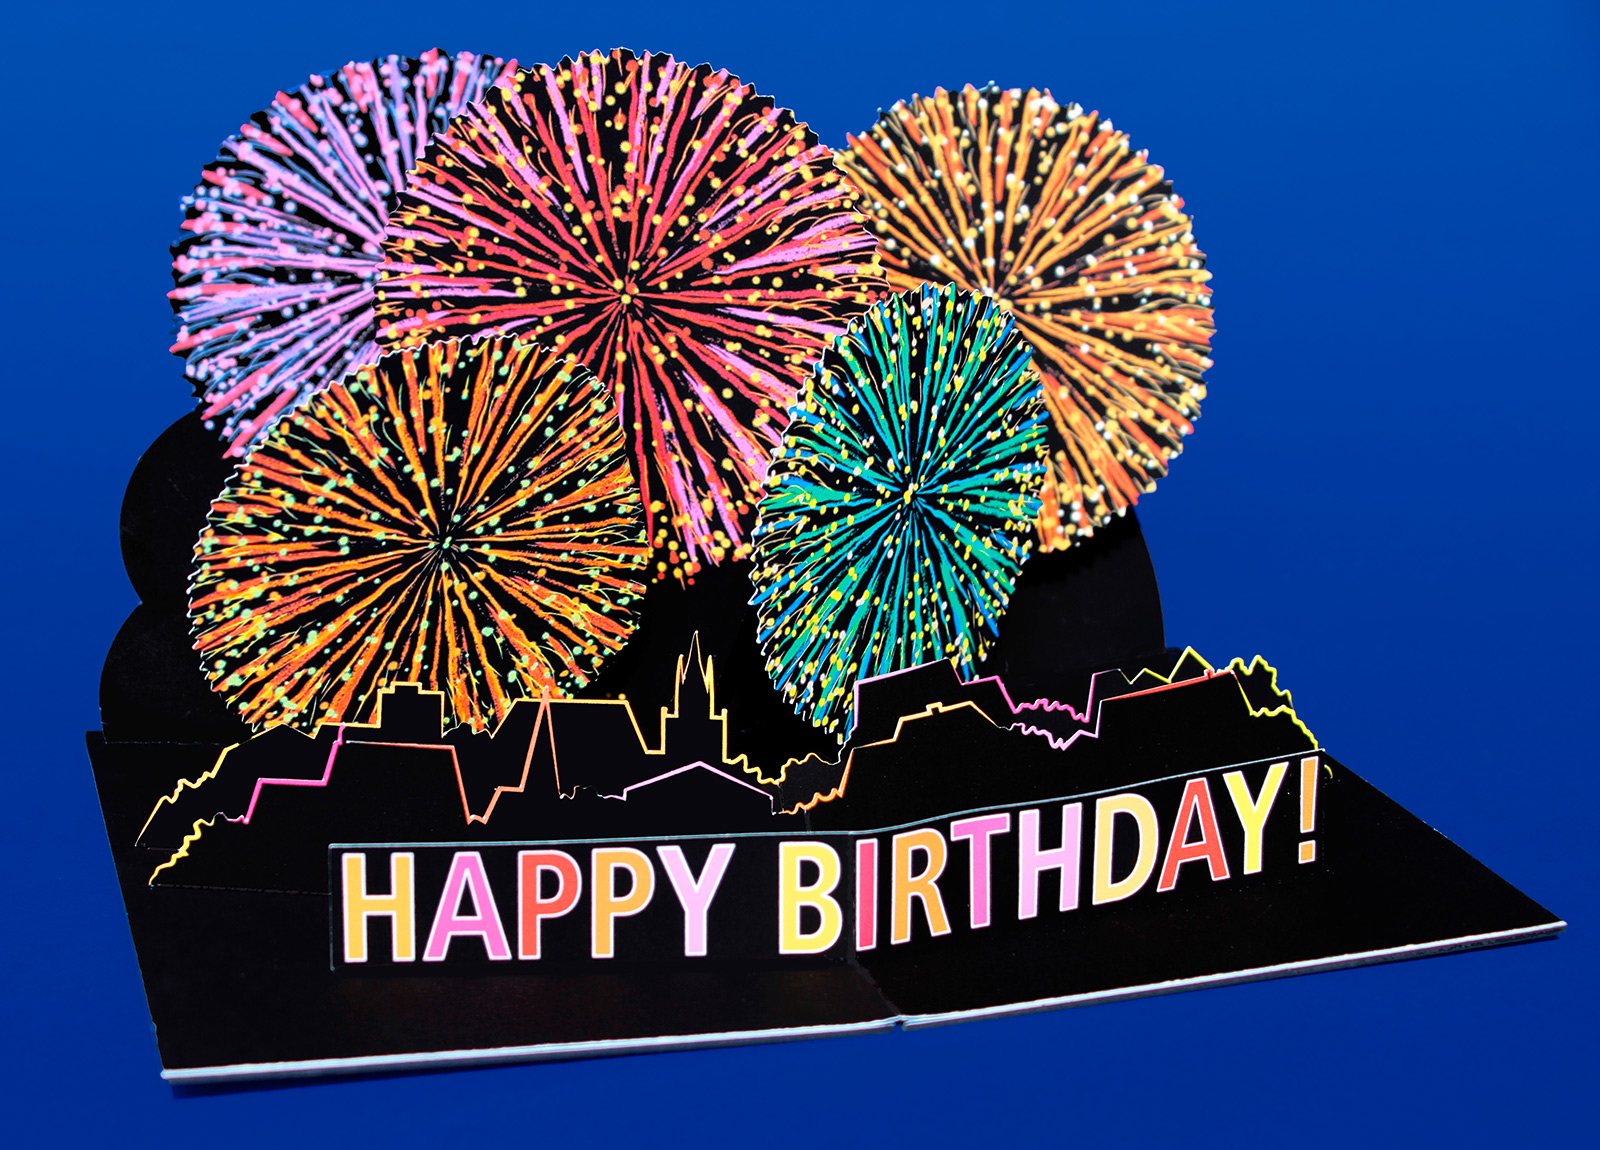 happy birthday pop up card ; Feuerwerk-pop-up-Karte-Happy-Birthday1600px